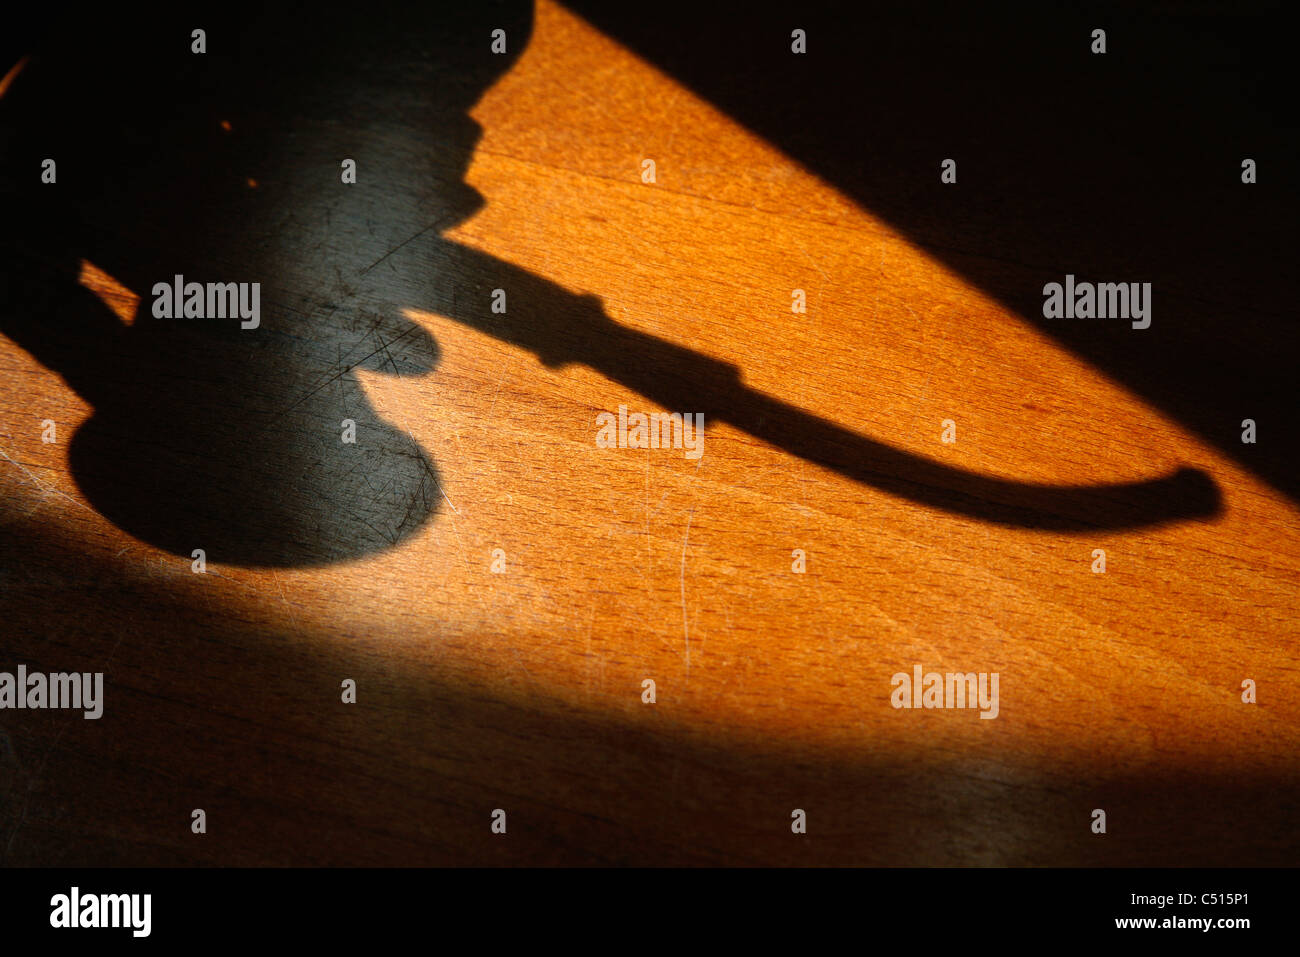 Shadow of smoking pipe - Stock Image